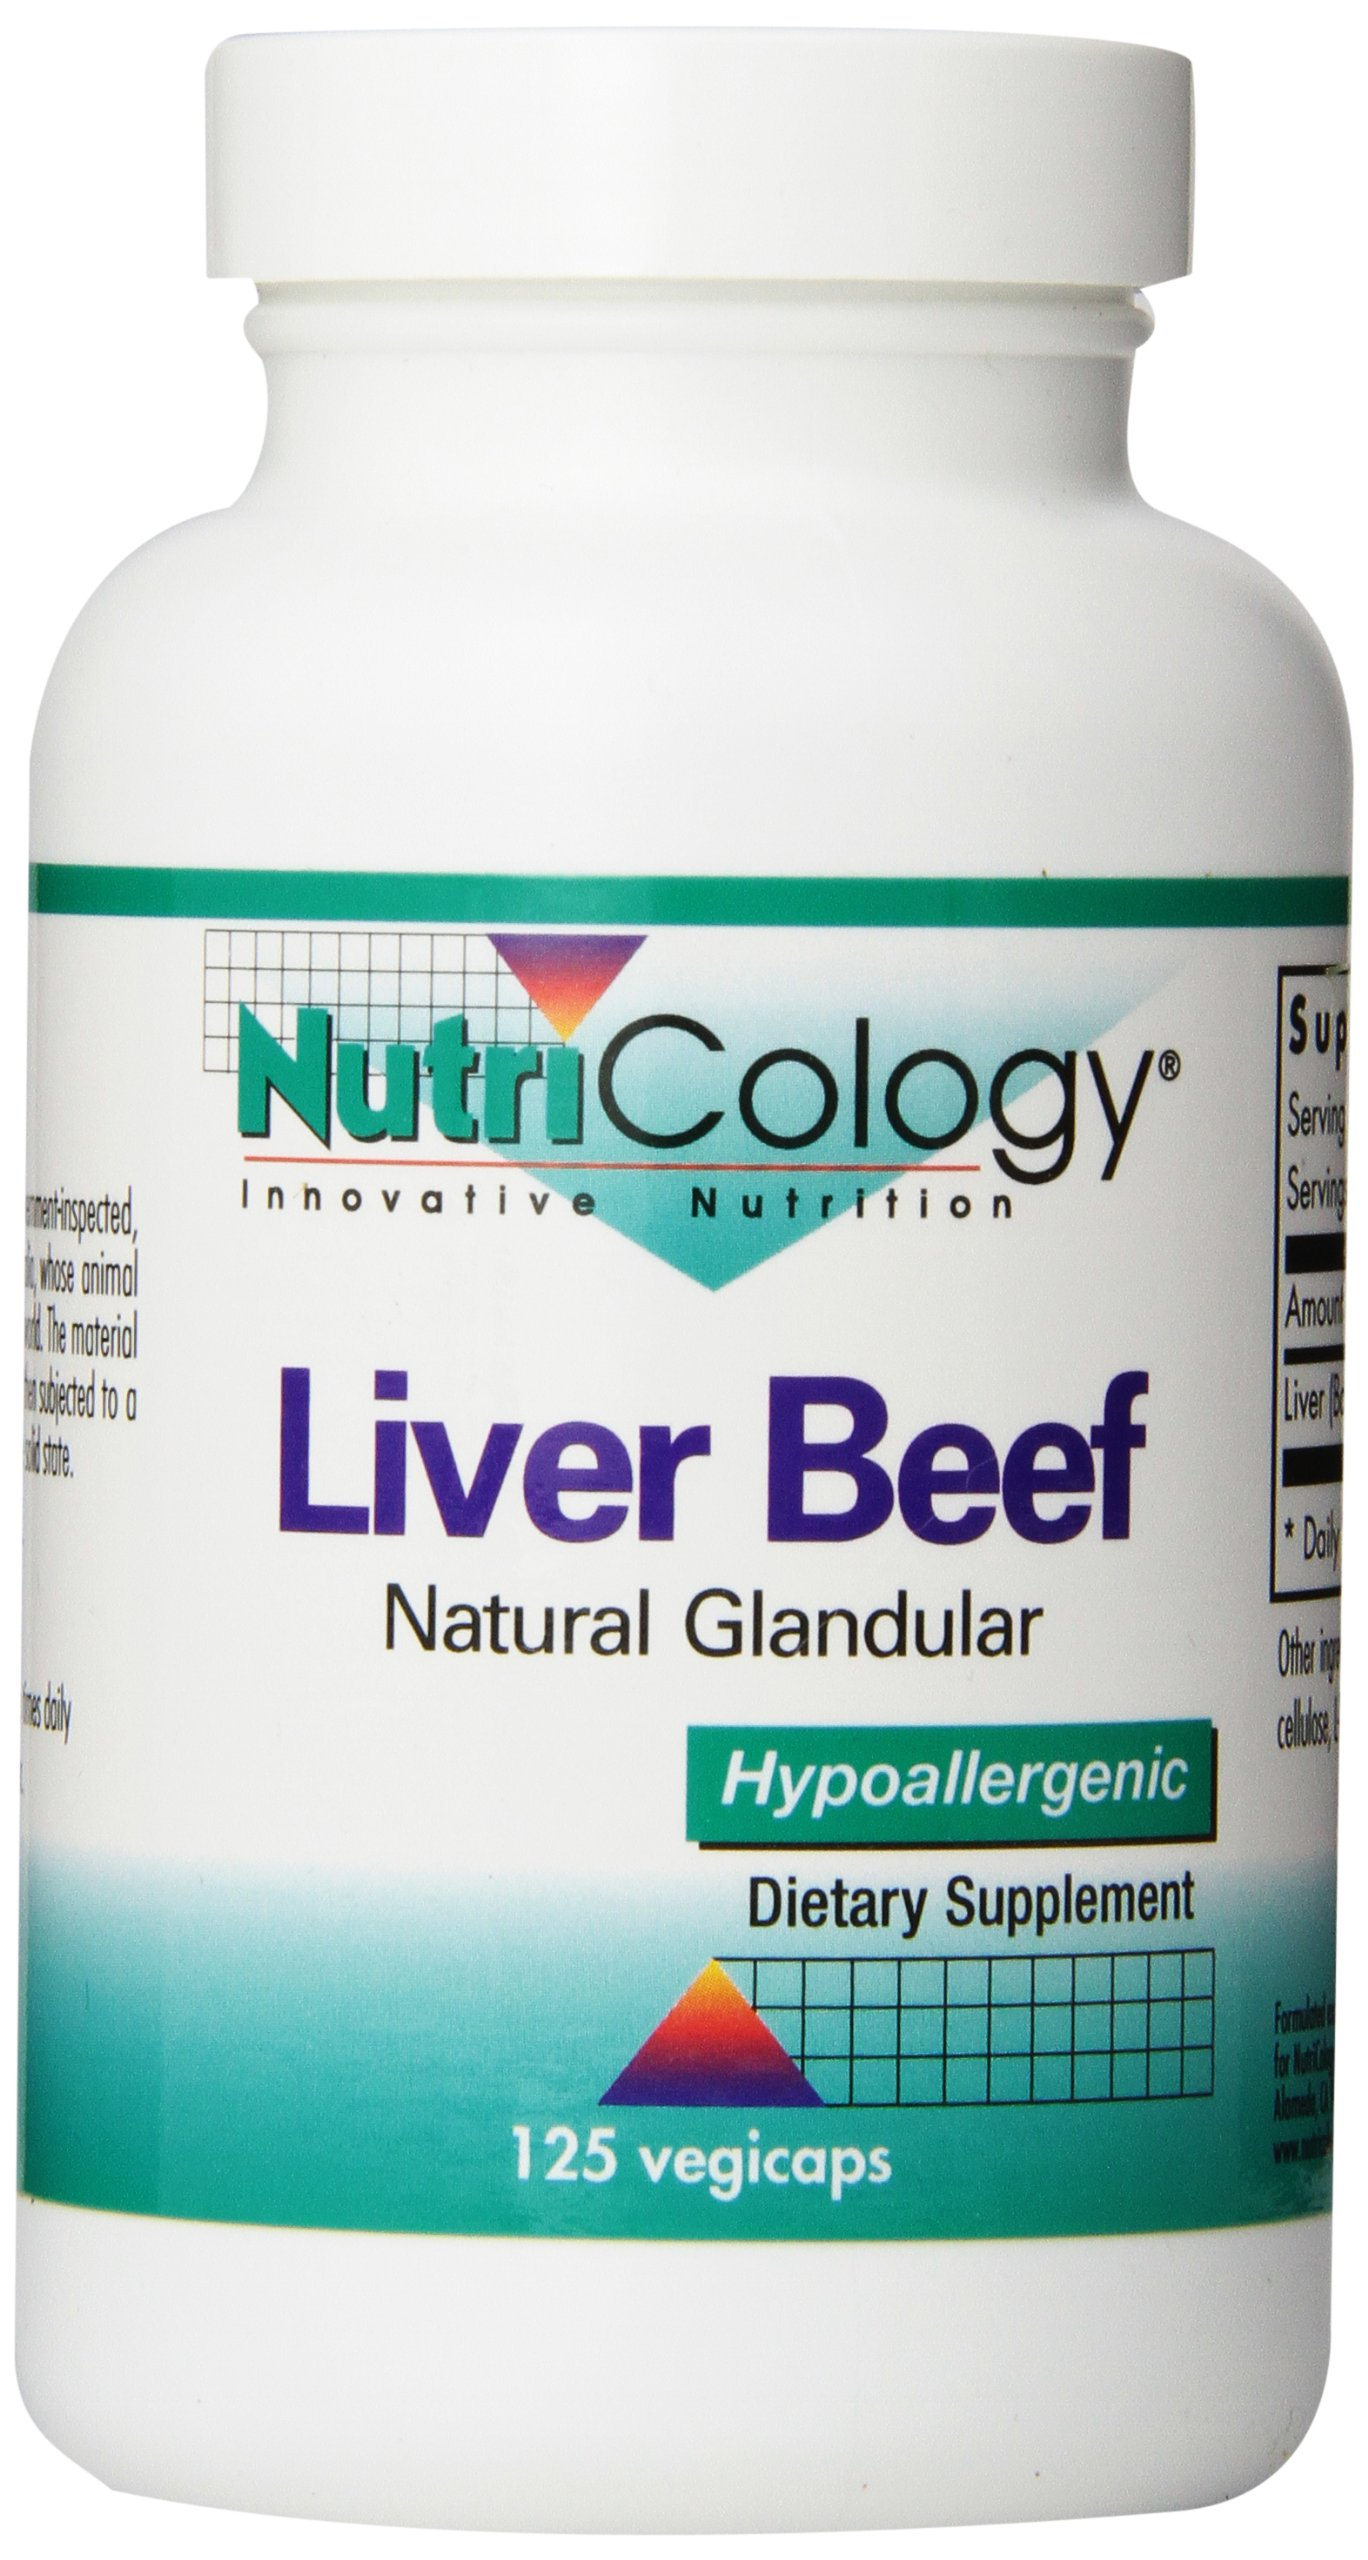 Nutricology Liver Beef, 125 Vegicaps by Nutricology